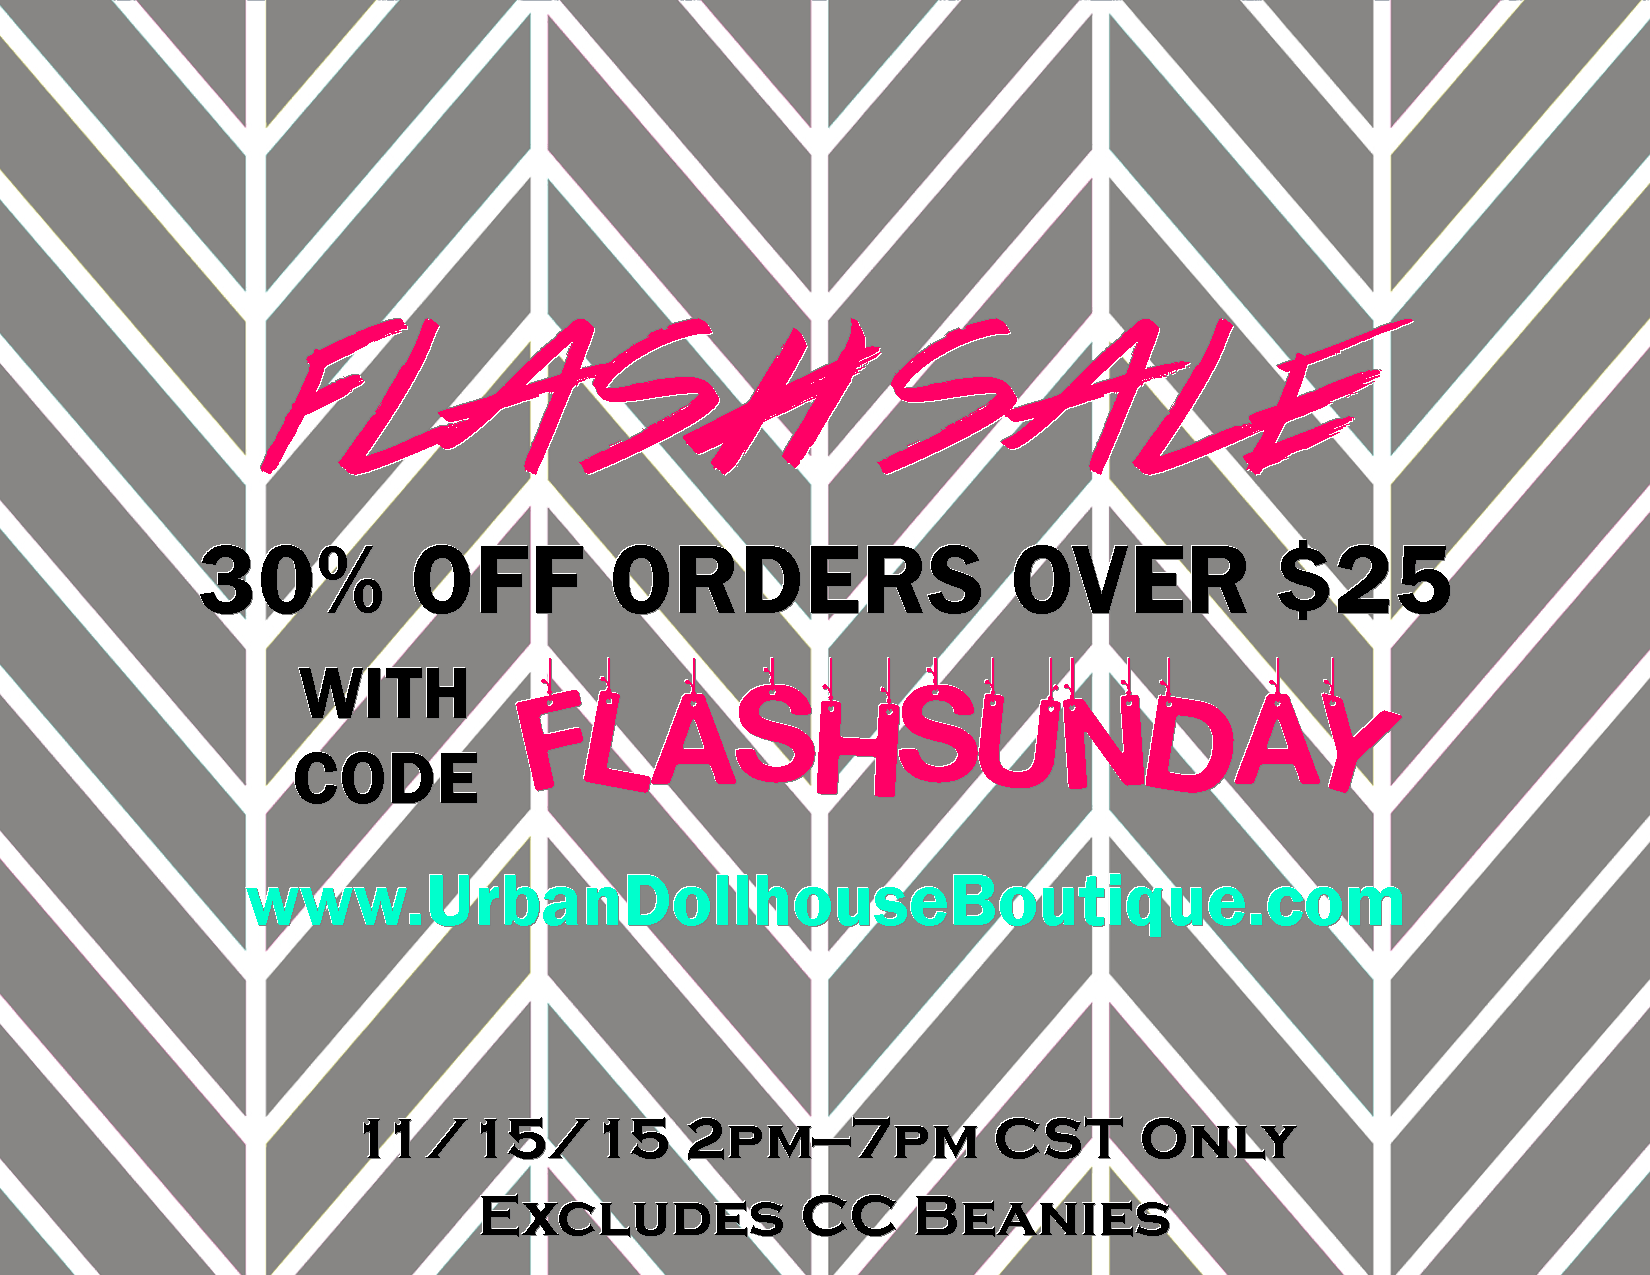 TODAY at www.UrbanDollhouseBoutique.com from 2pm to 7pm CST only! Save 30% off everything (except CC Beanies) with code FLASHSUNDAY!!! EnJoY!